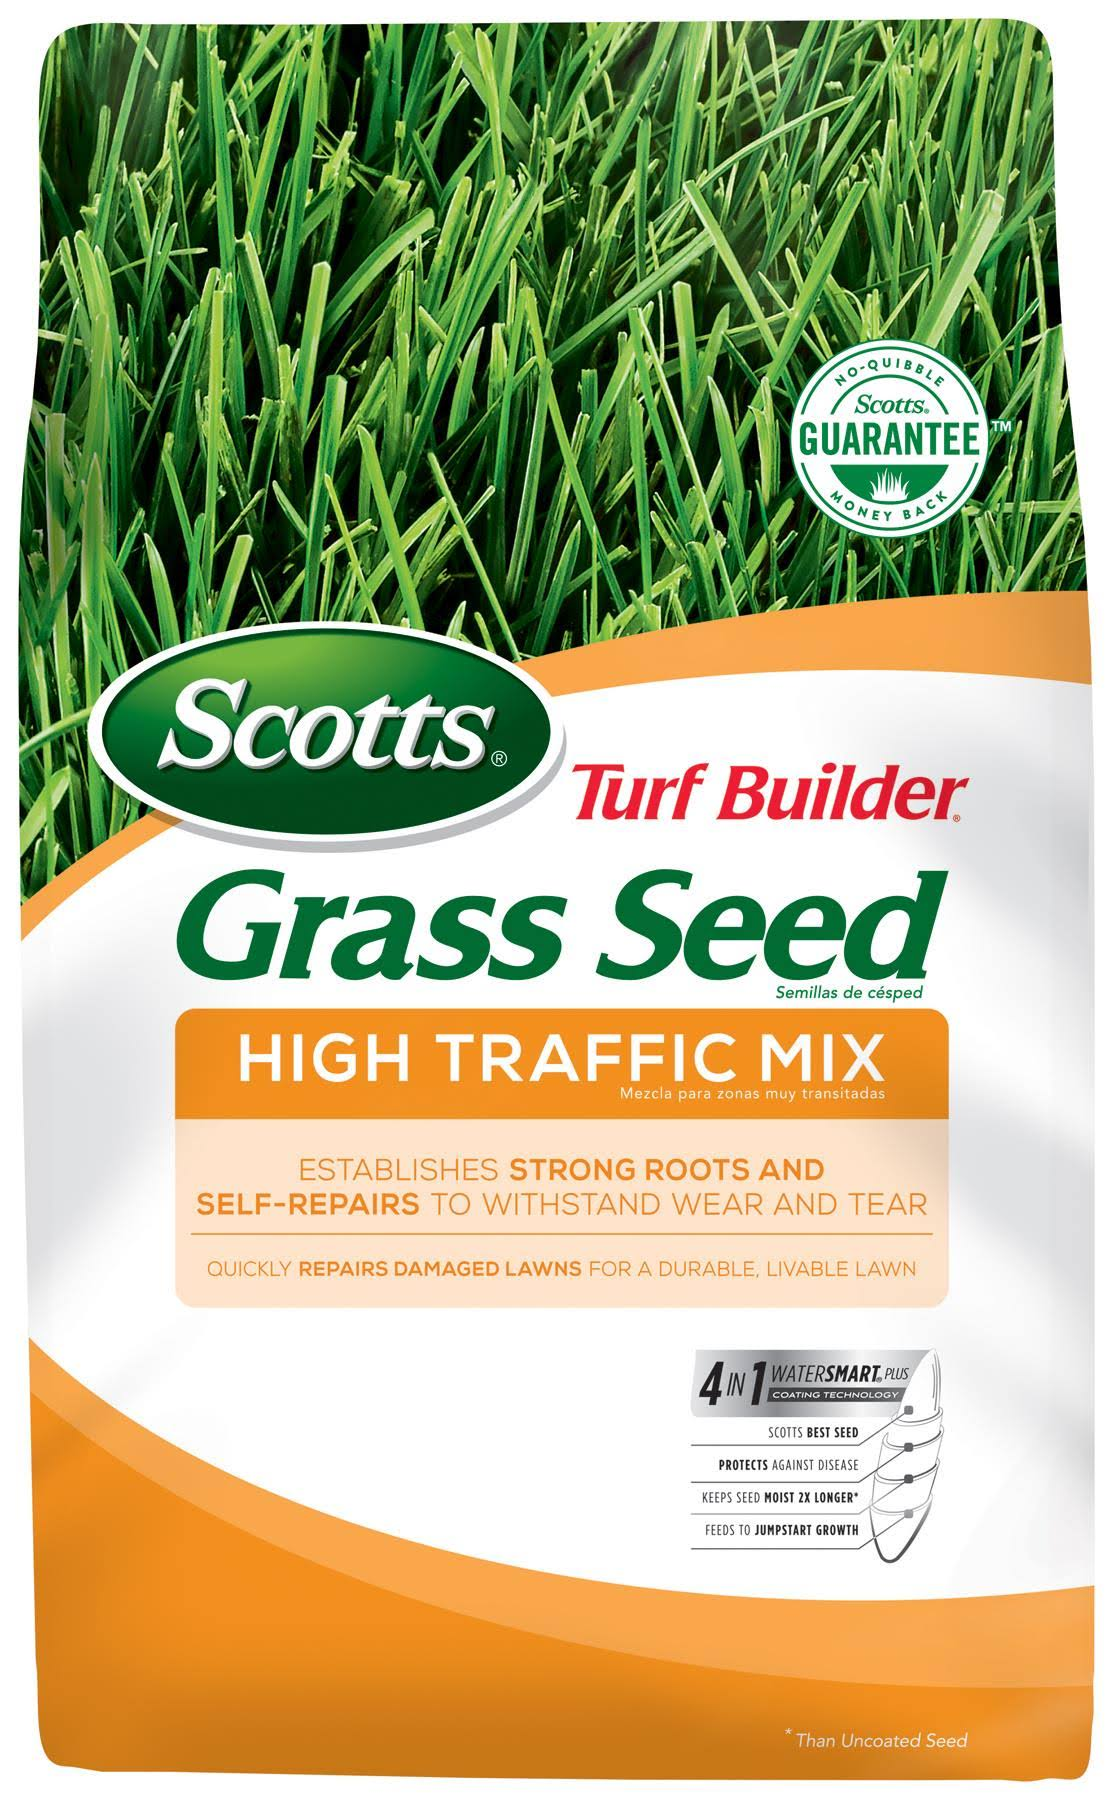 Scotts Turf Builder High Traffic Mix - 3lb